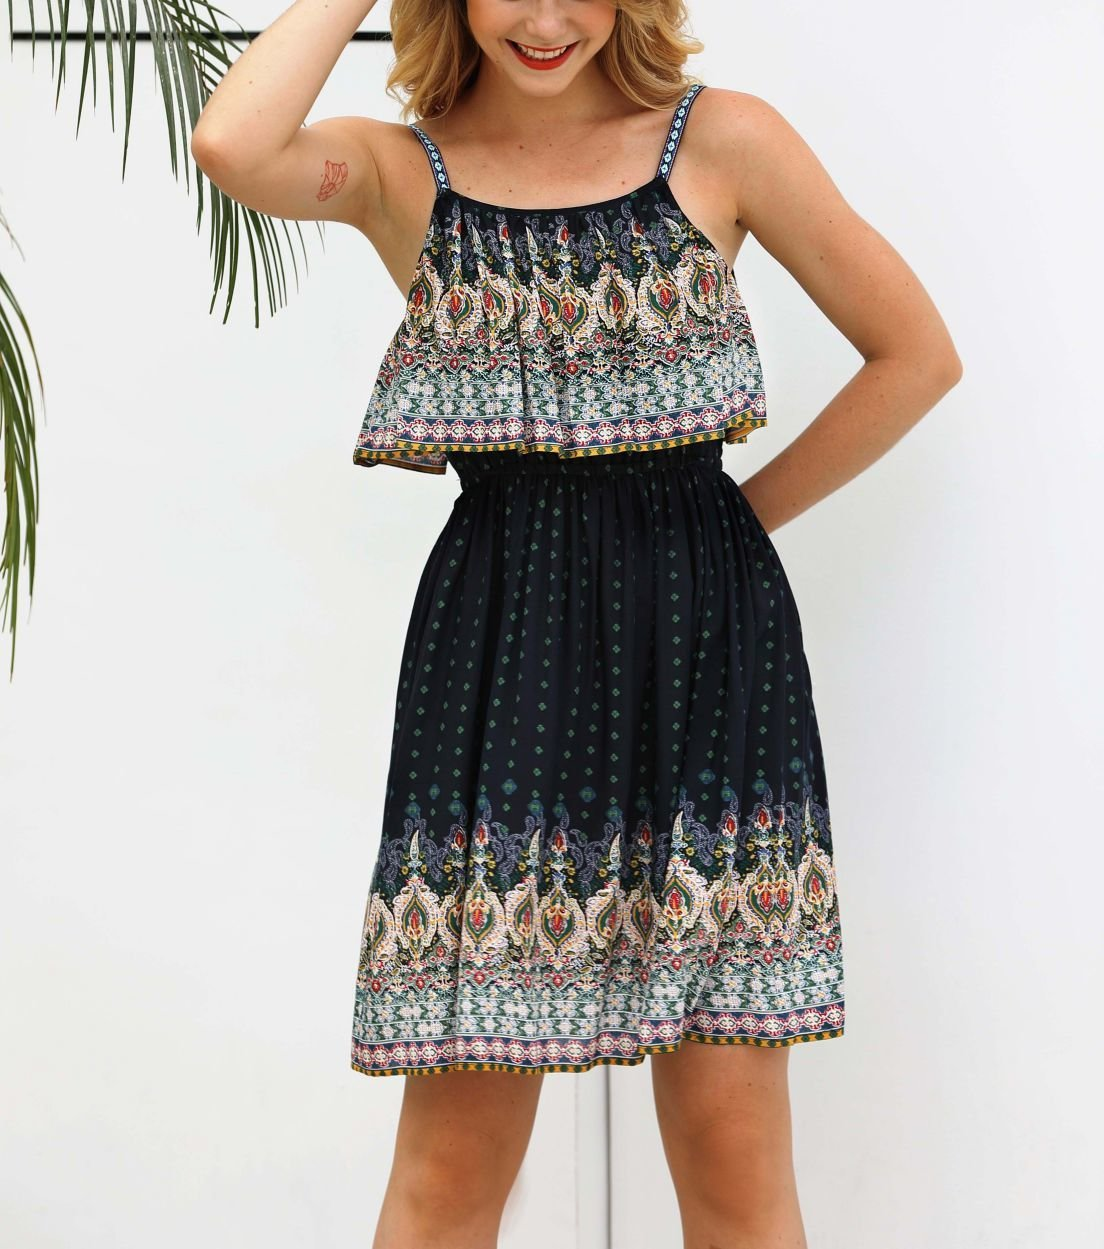 Border Print Casual Dress with Pleated Top Overlay